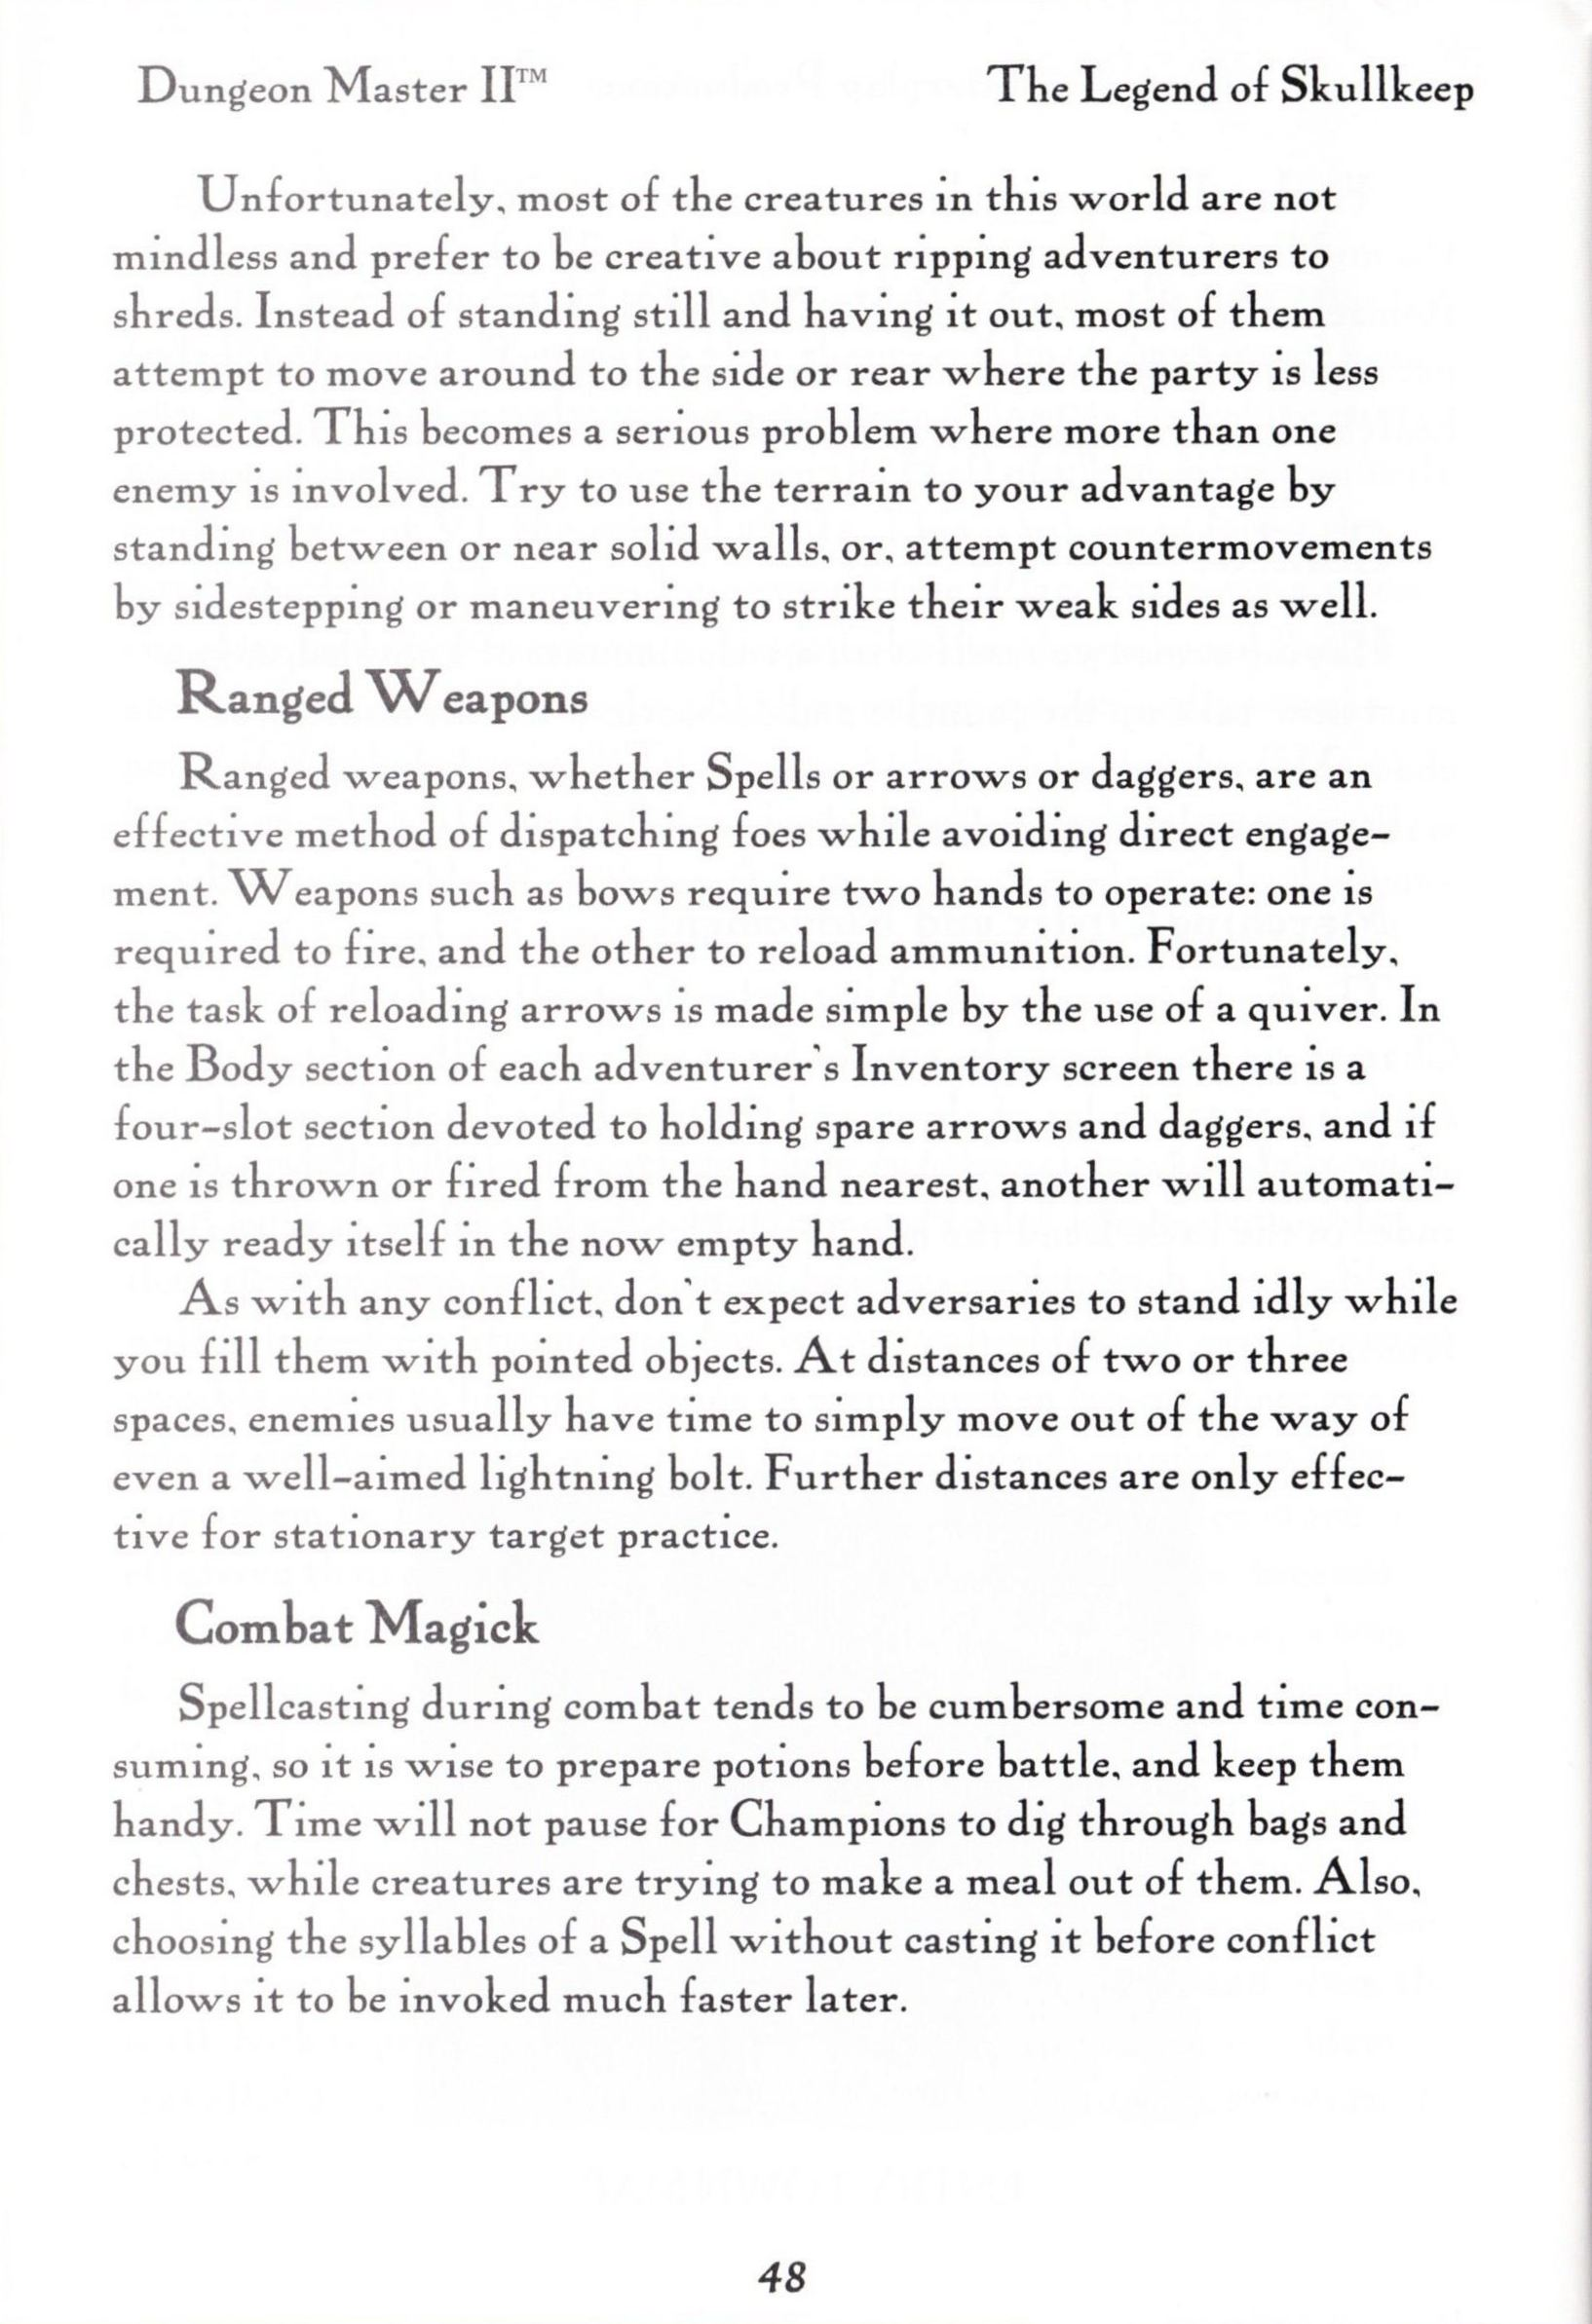 Game - Dungeon Master II - US - PC - Big Box - Manual - Page 050 - Scan